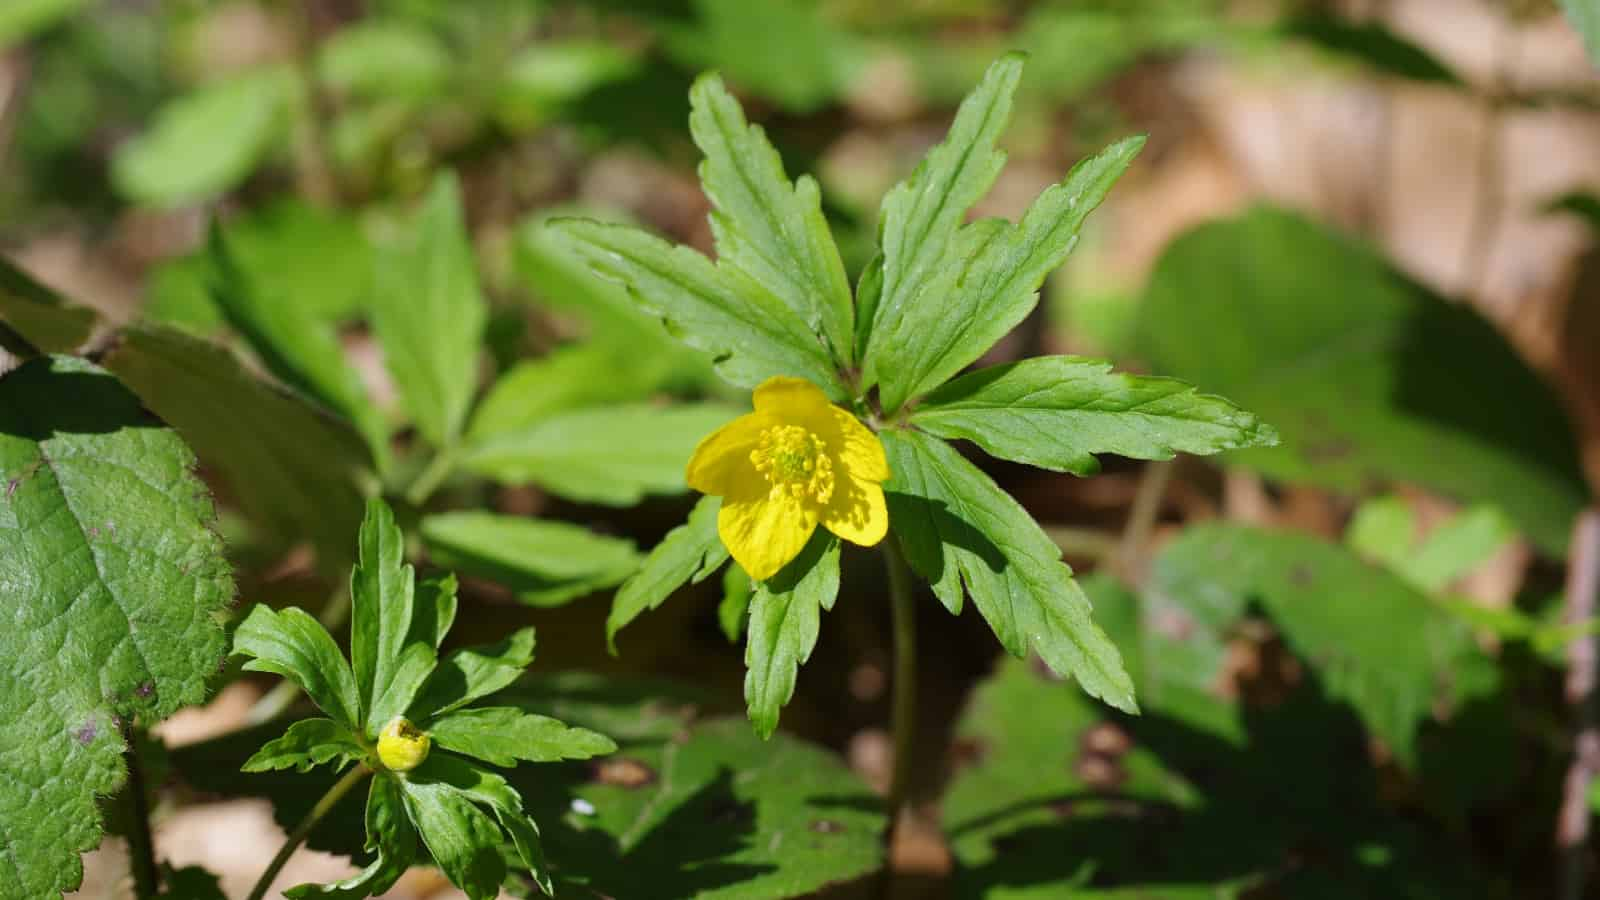 Yellow wood anemone (Anemone ranuculoides) - Photo: Belasitsa Nature Park/Ilia Kochev Levkov